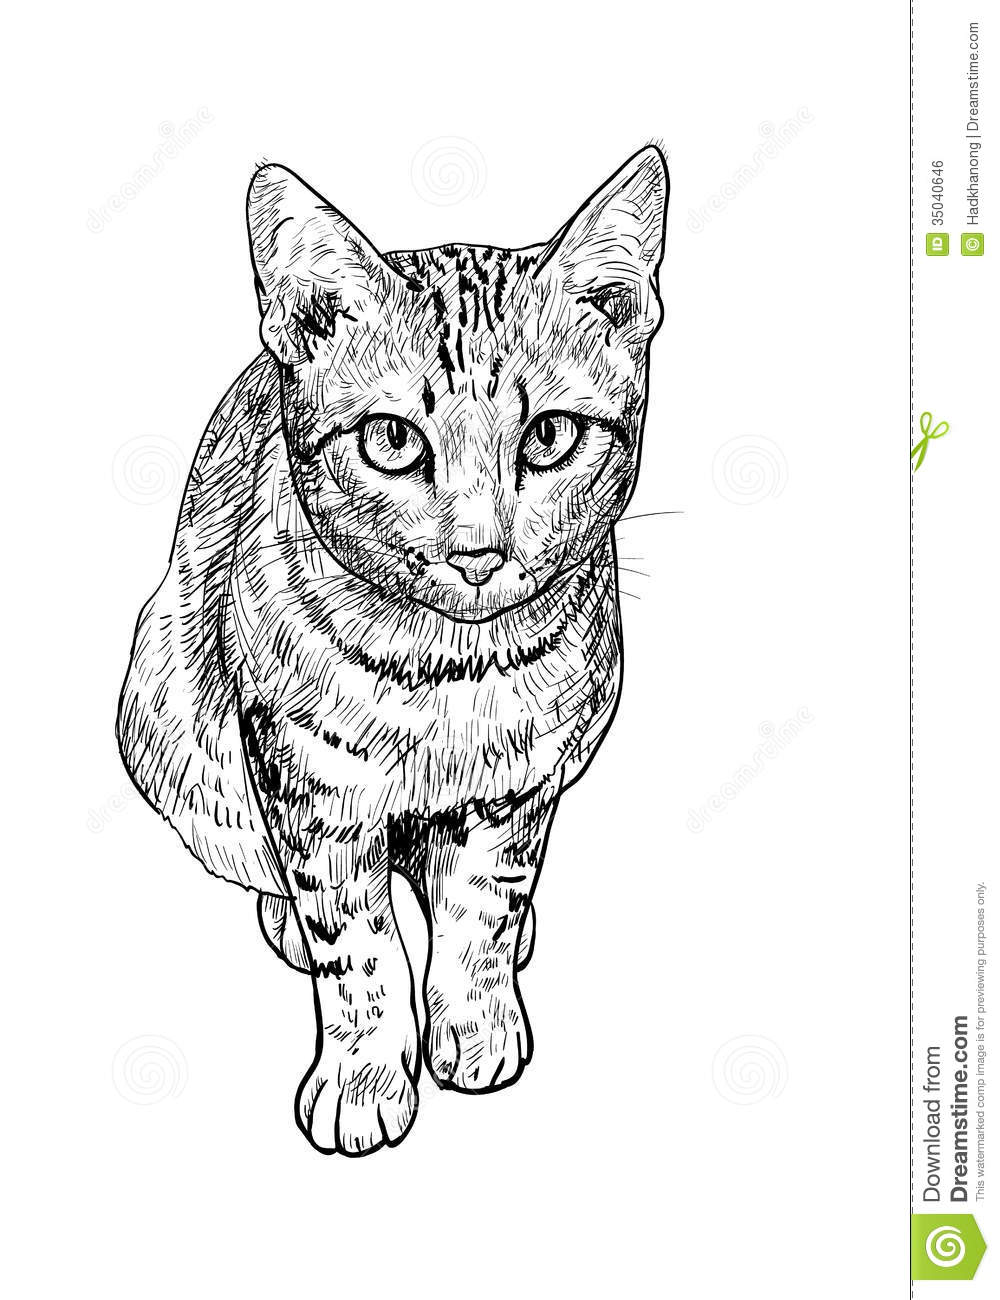 Curious Cute Cat Royalty Free Stock Image Image 35040646